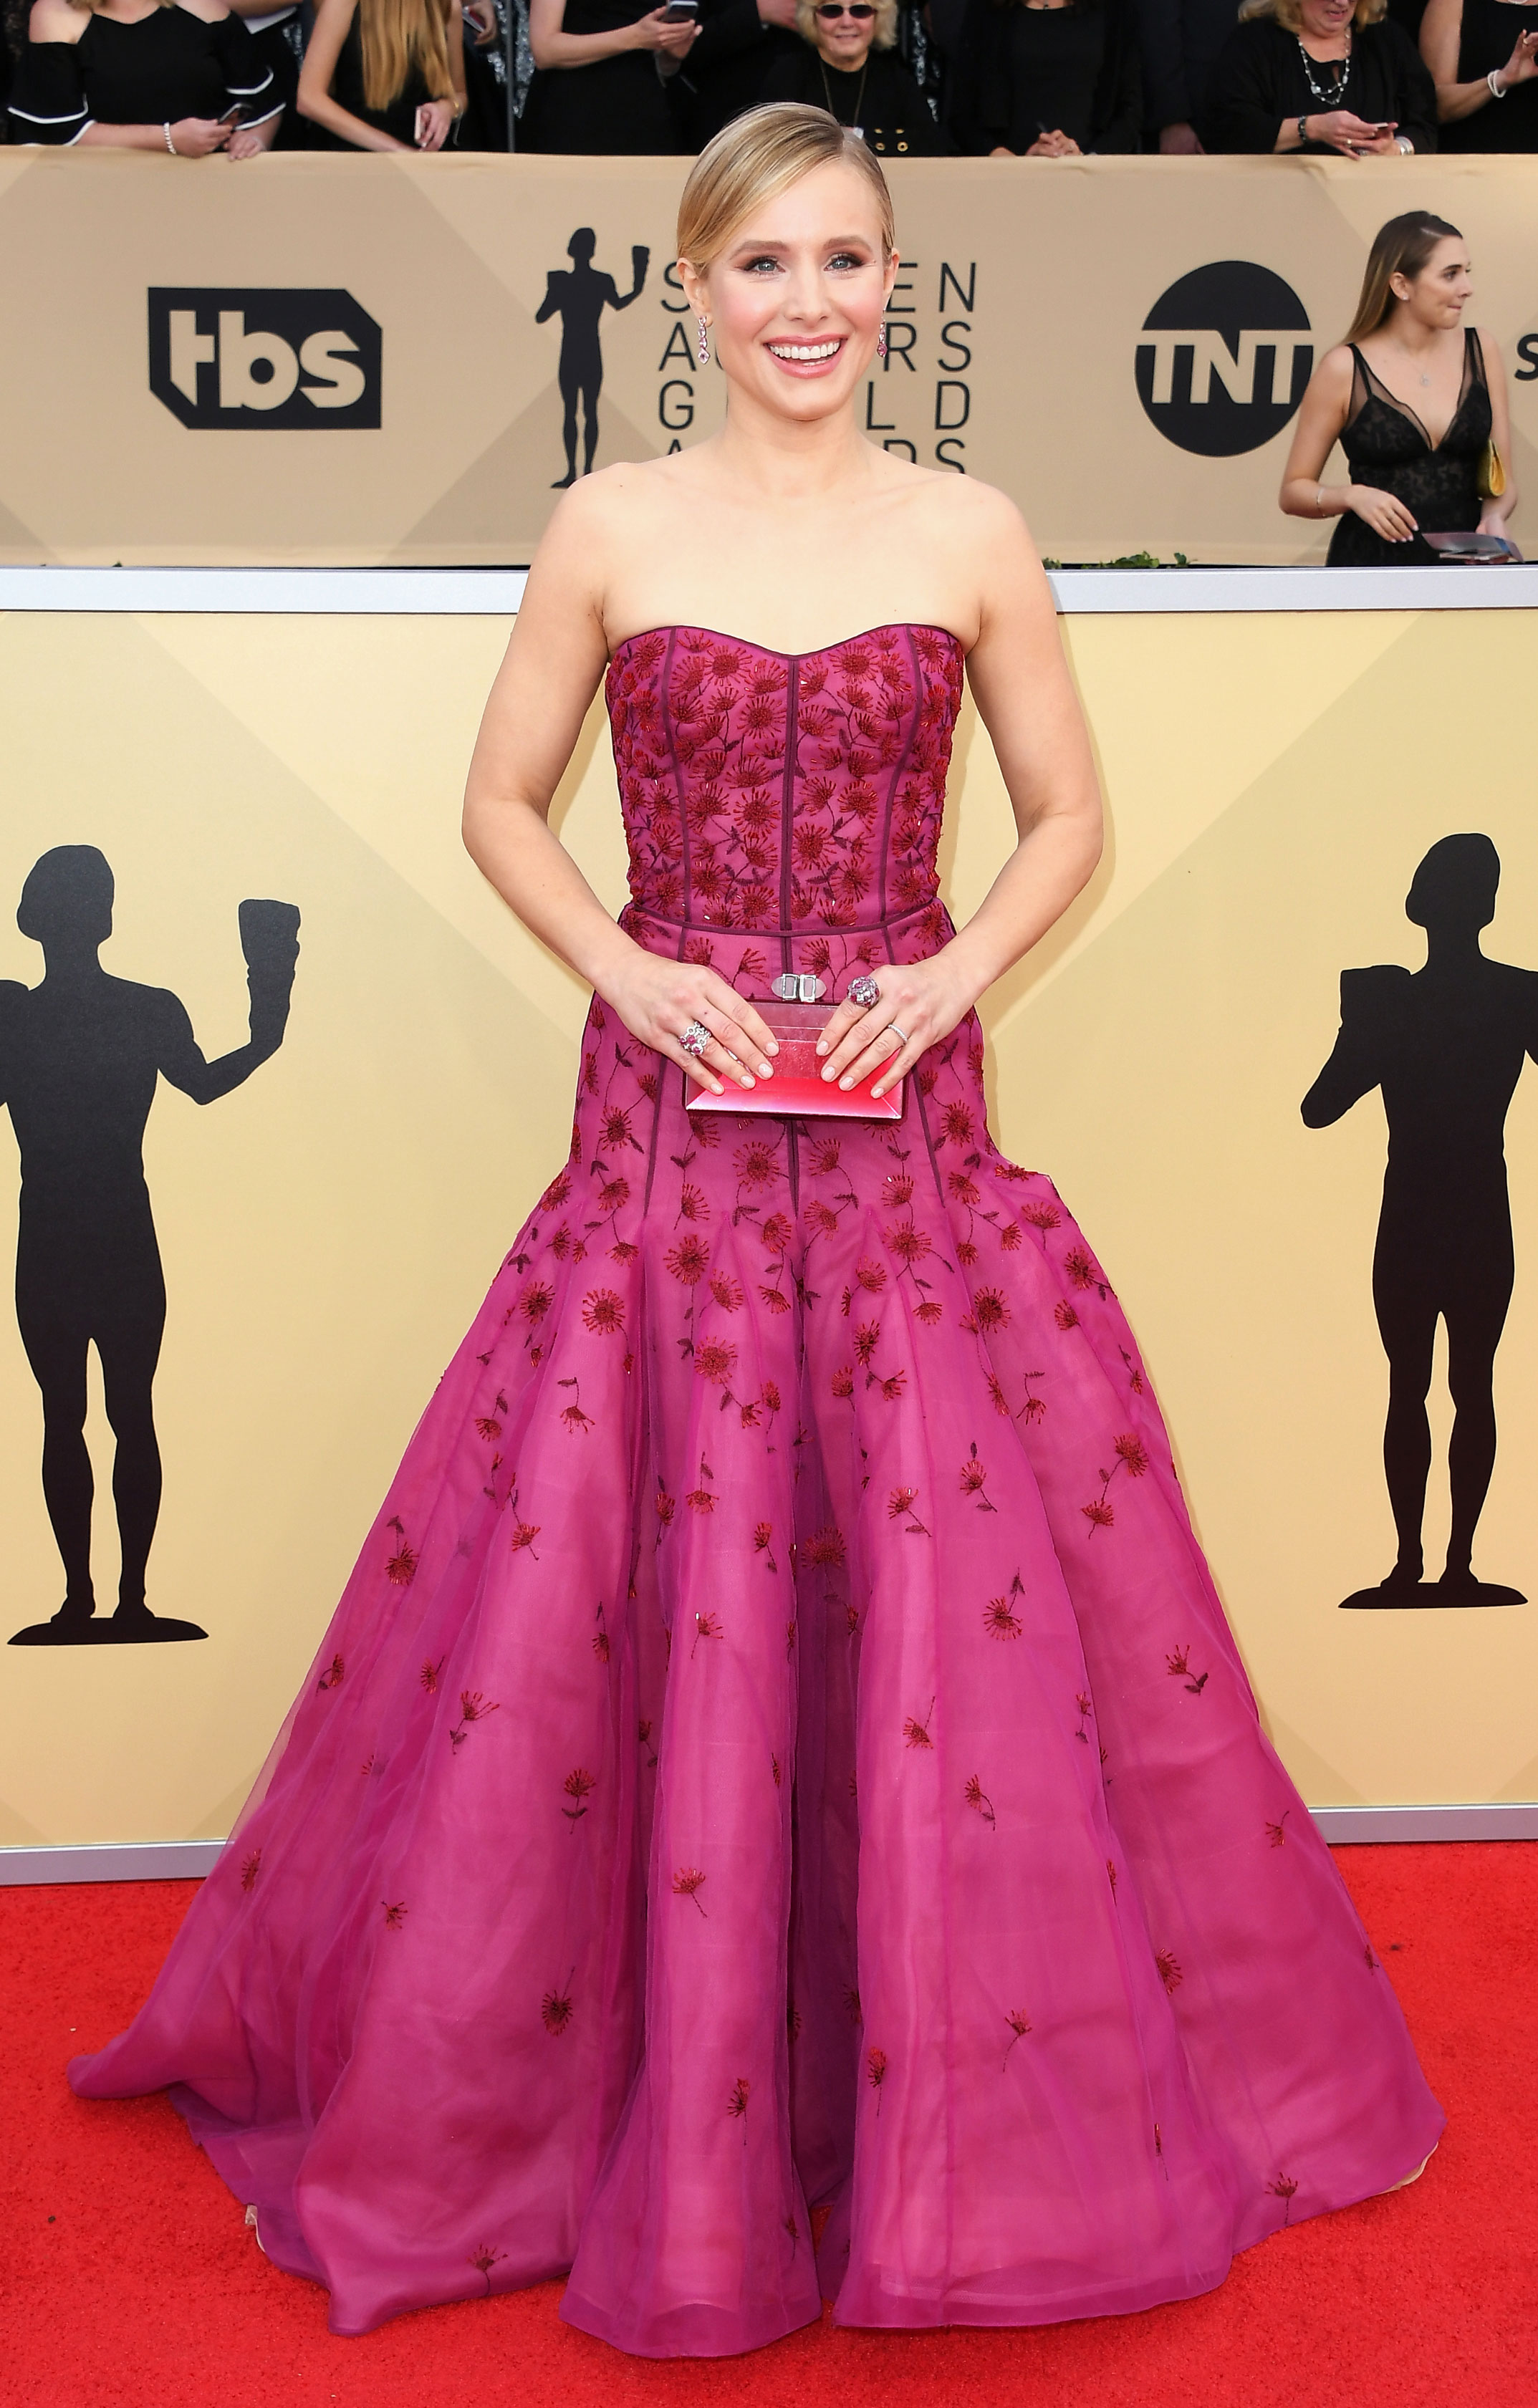 SAG Awards 2018 Red Carpet Fashion: See Stars Dresses, Gowns